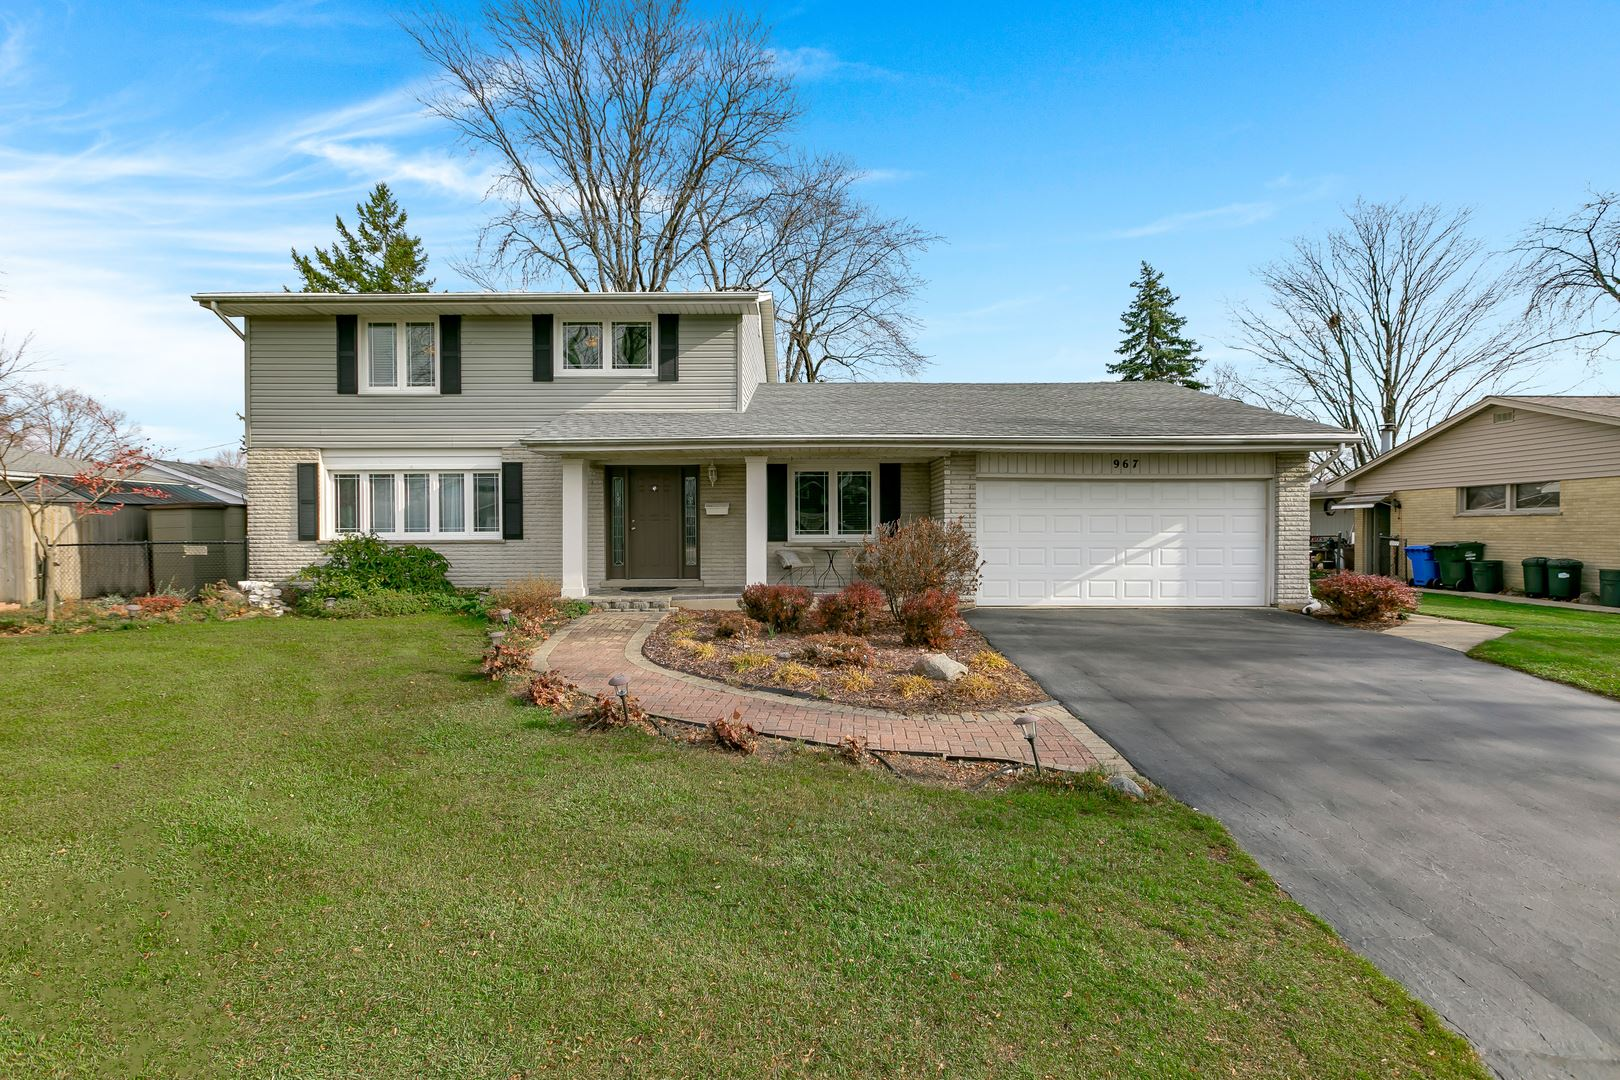 Photo for 967 Marshall Drive, Des Plaines, IL 60016 (MLS # 10939258)